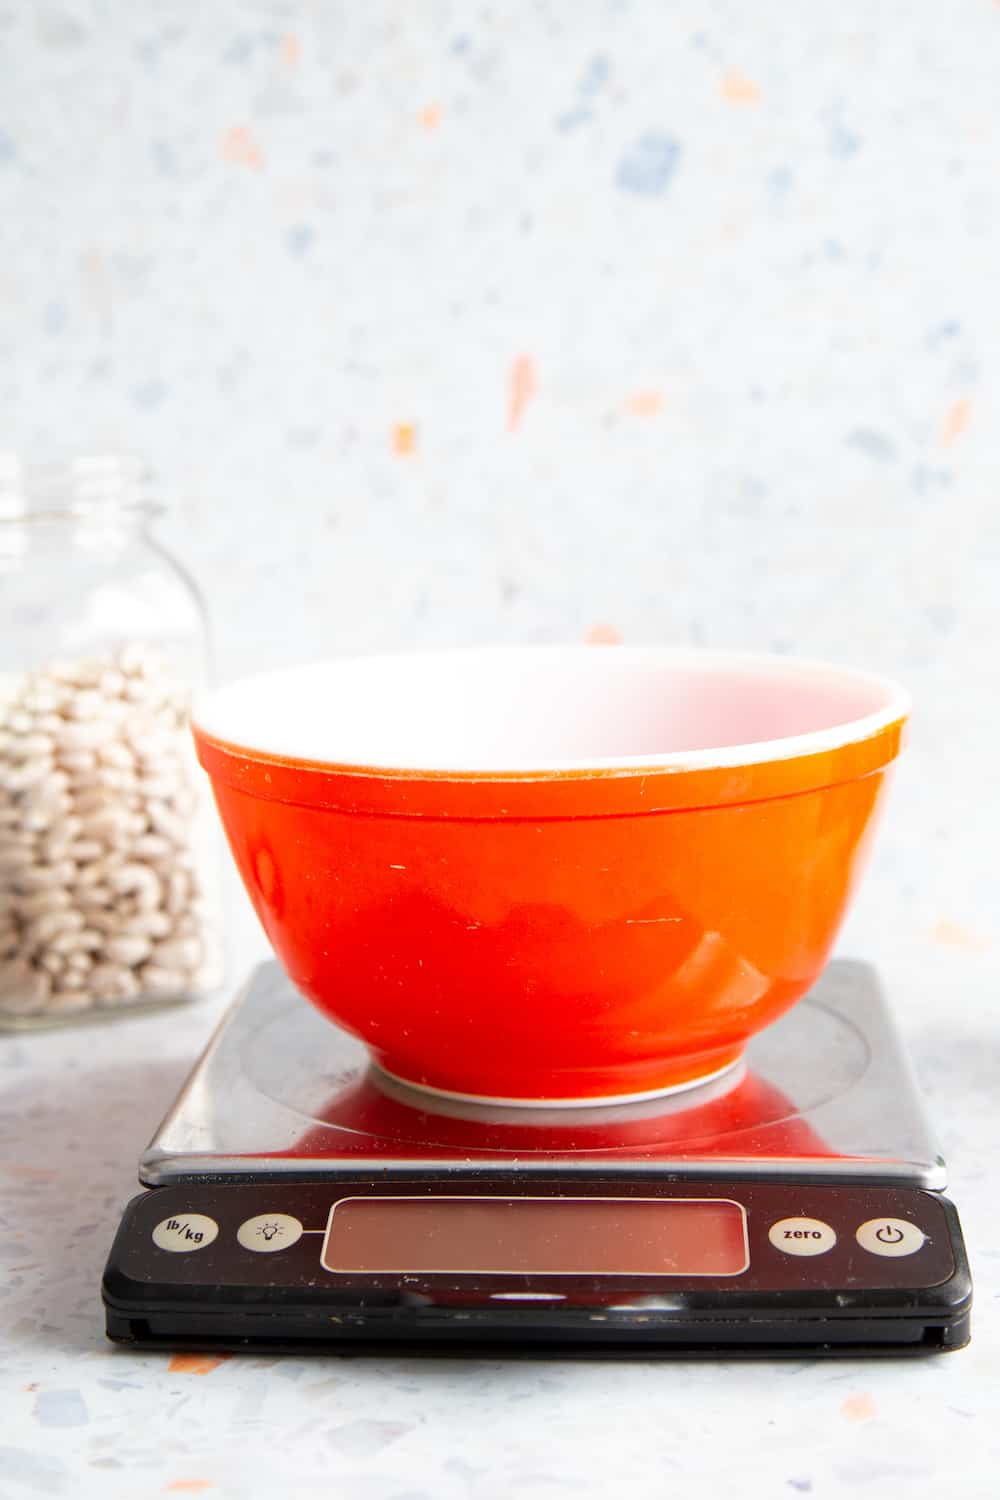 bowl on a kitchen scale